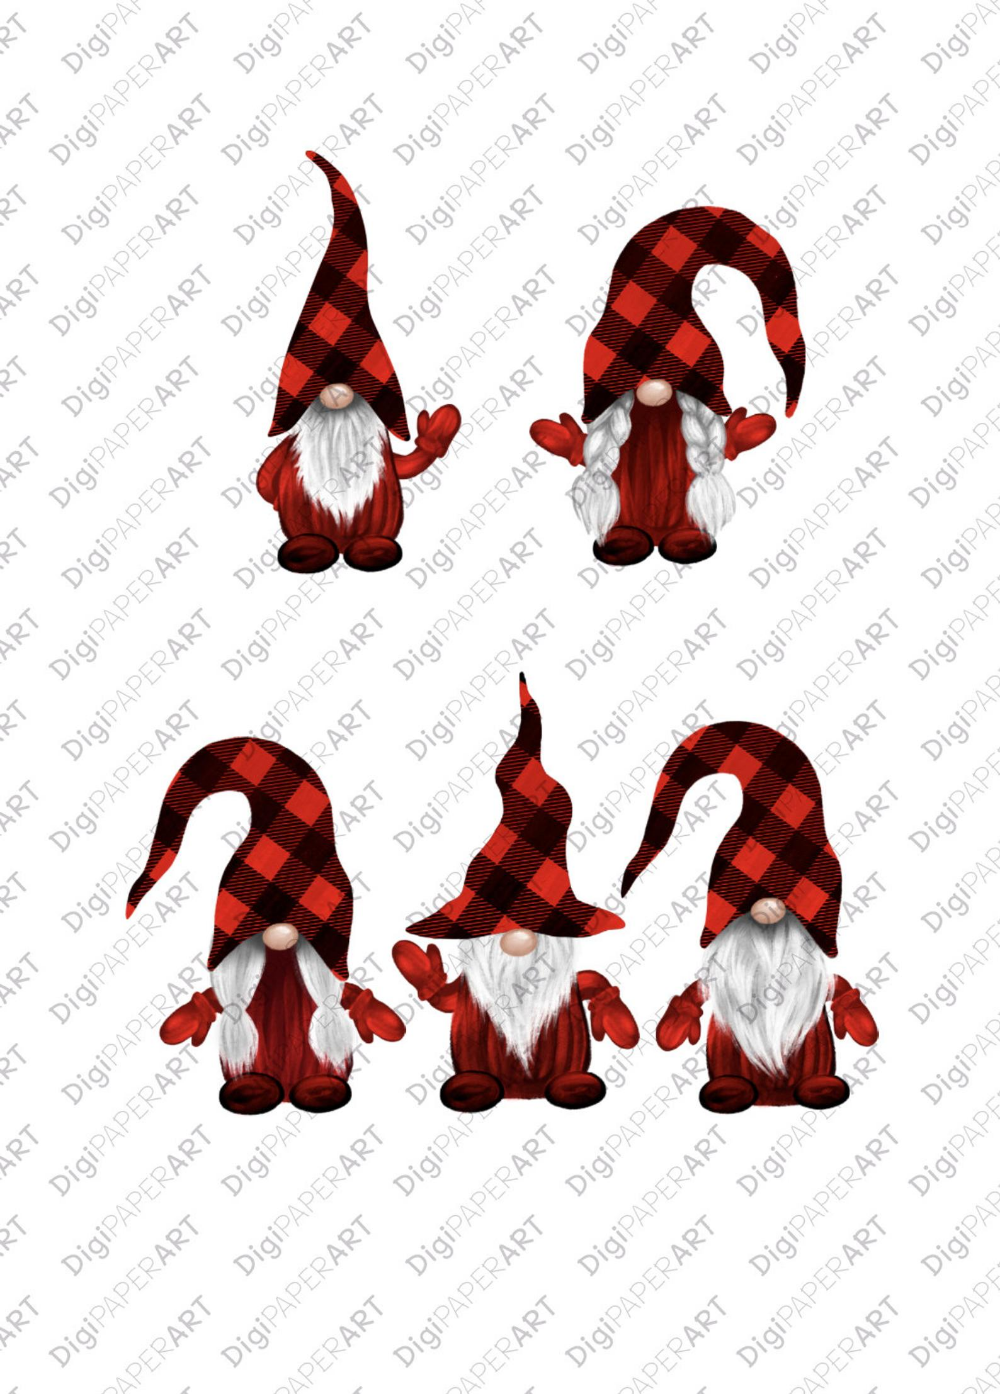 Christmas Png Buffalo Plaid Gnomes Clipart Scandinavian Etsy Scandinavian Gnomes Gnomes Crafts Gnome Patterns